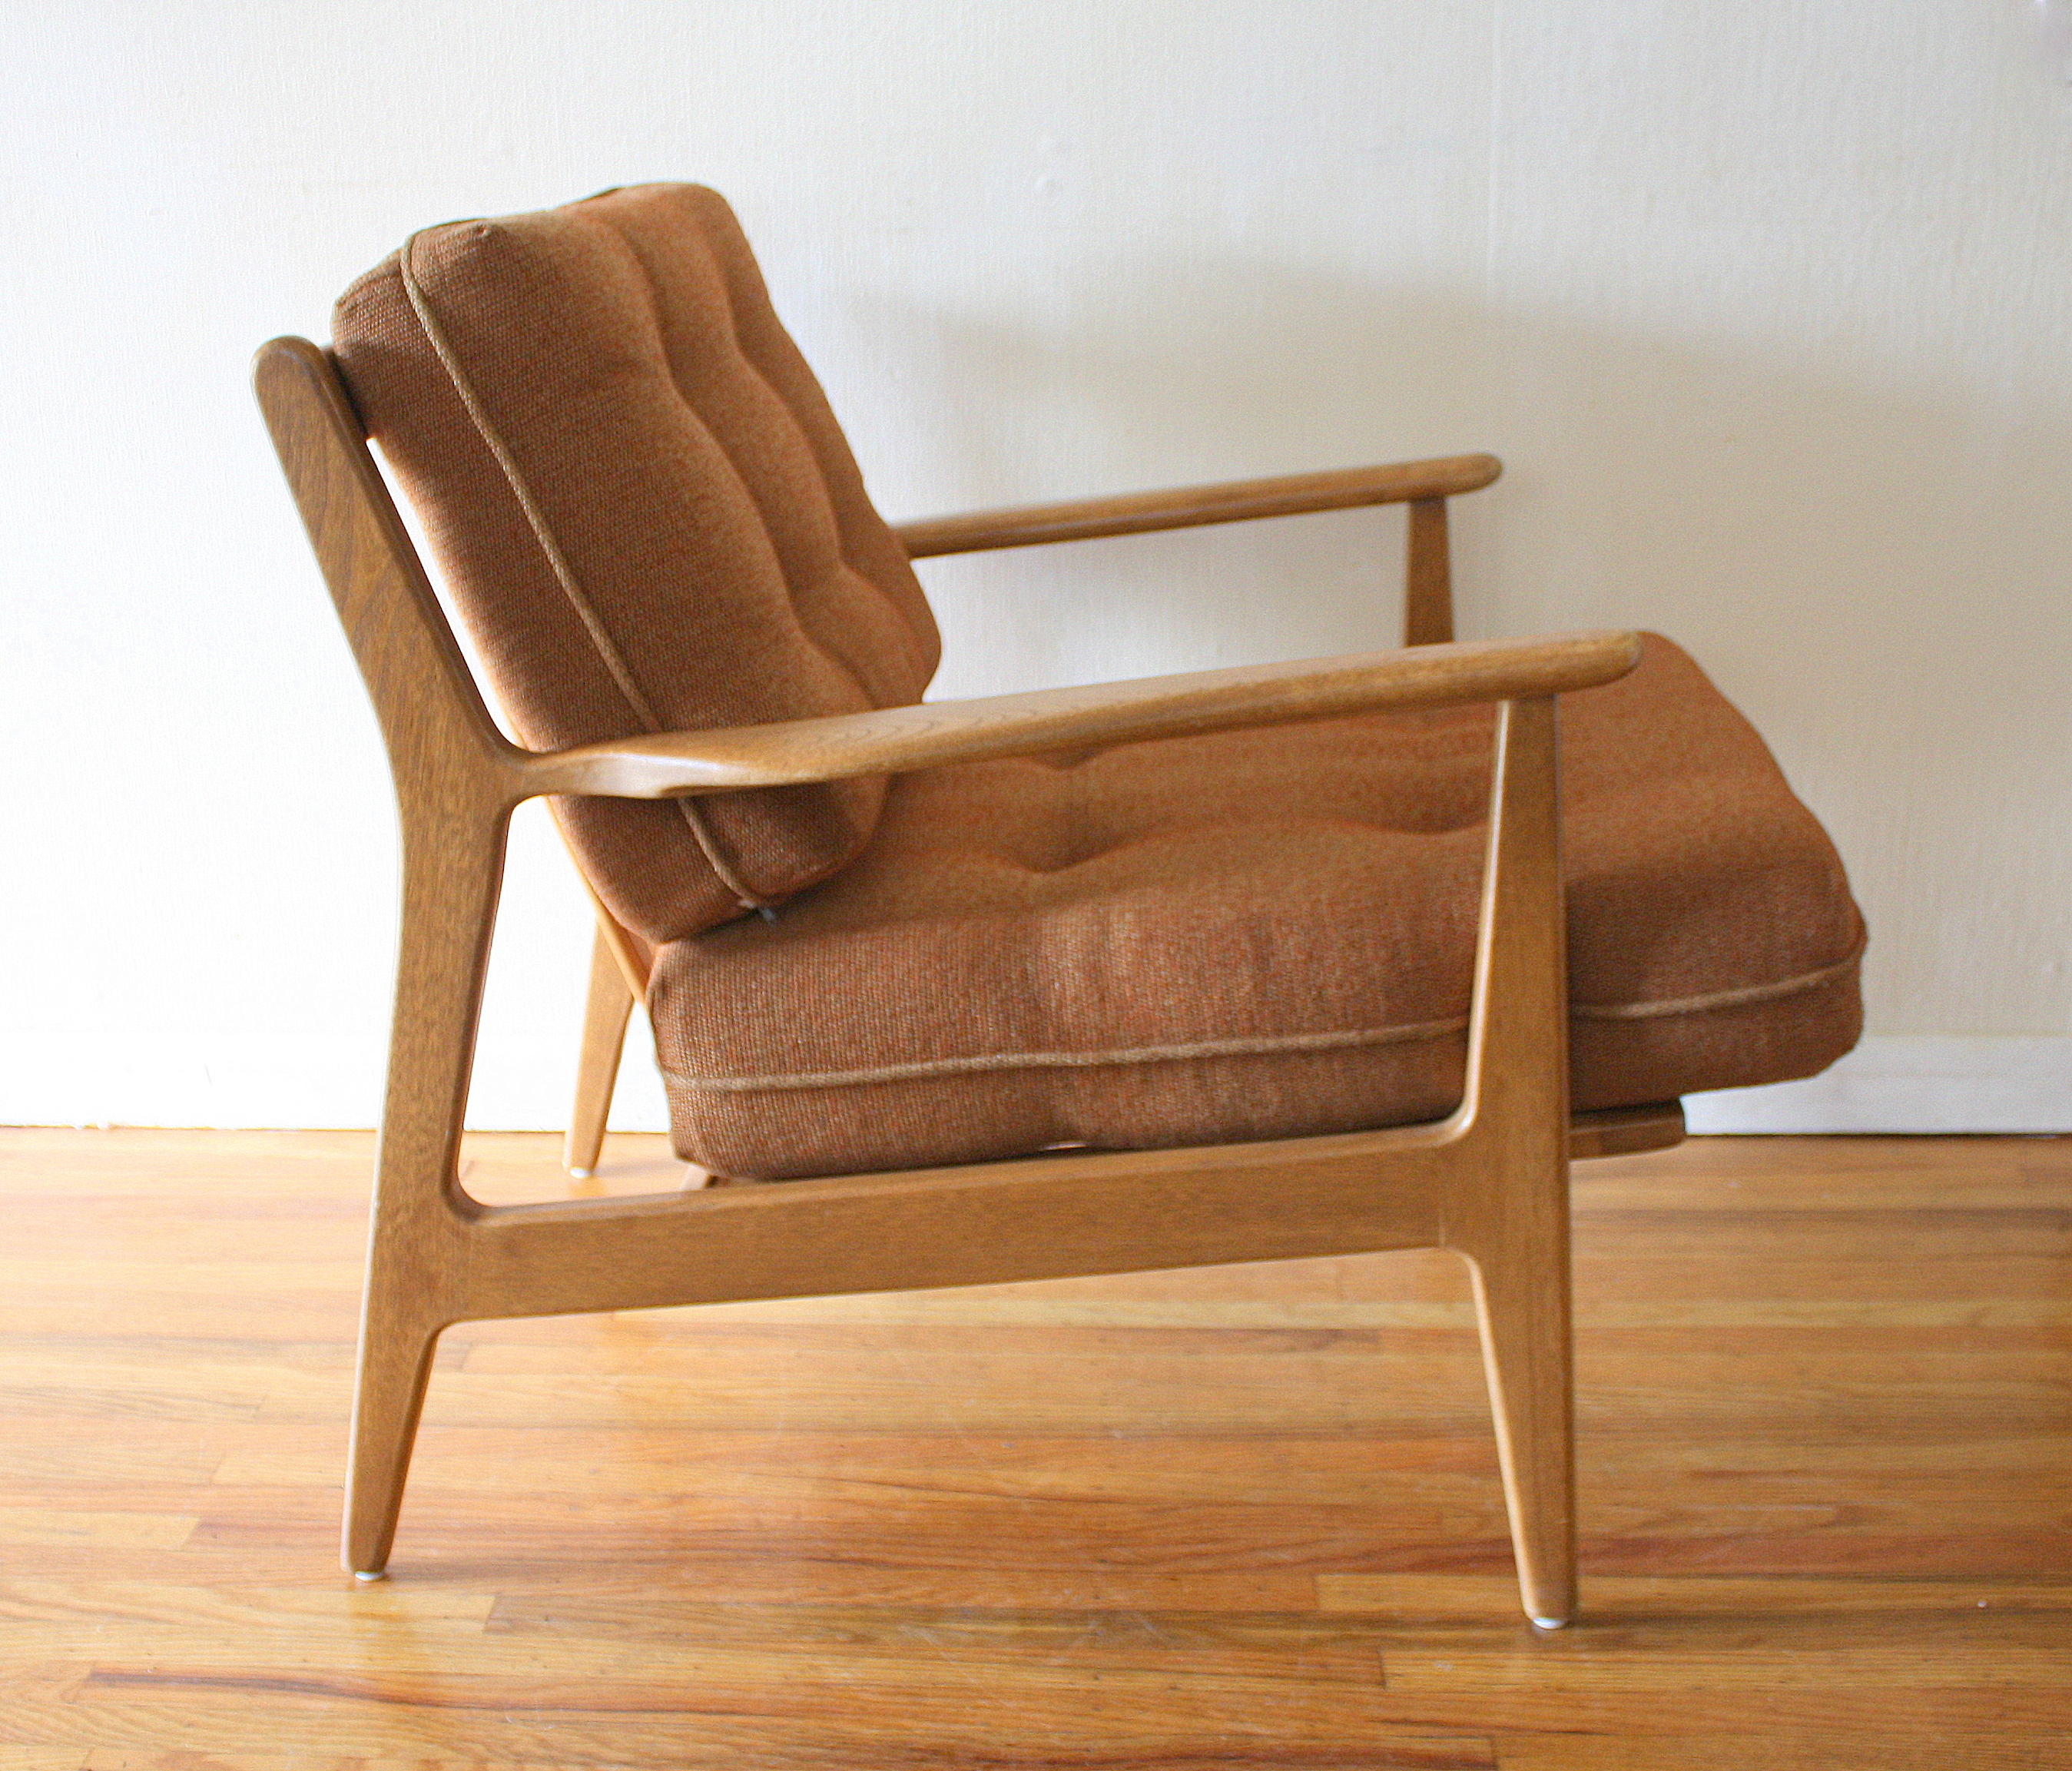 Divine Mid Century Arm Lounge Chairs By Baumritter Mid Century Arm Lounge Chairs By Baumritter Picked Vintage Mid Century Chairs Vancouver Mid Century Chairs Used houzz 01 Mid Century Modern Chairs